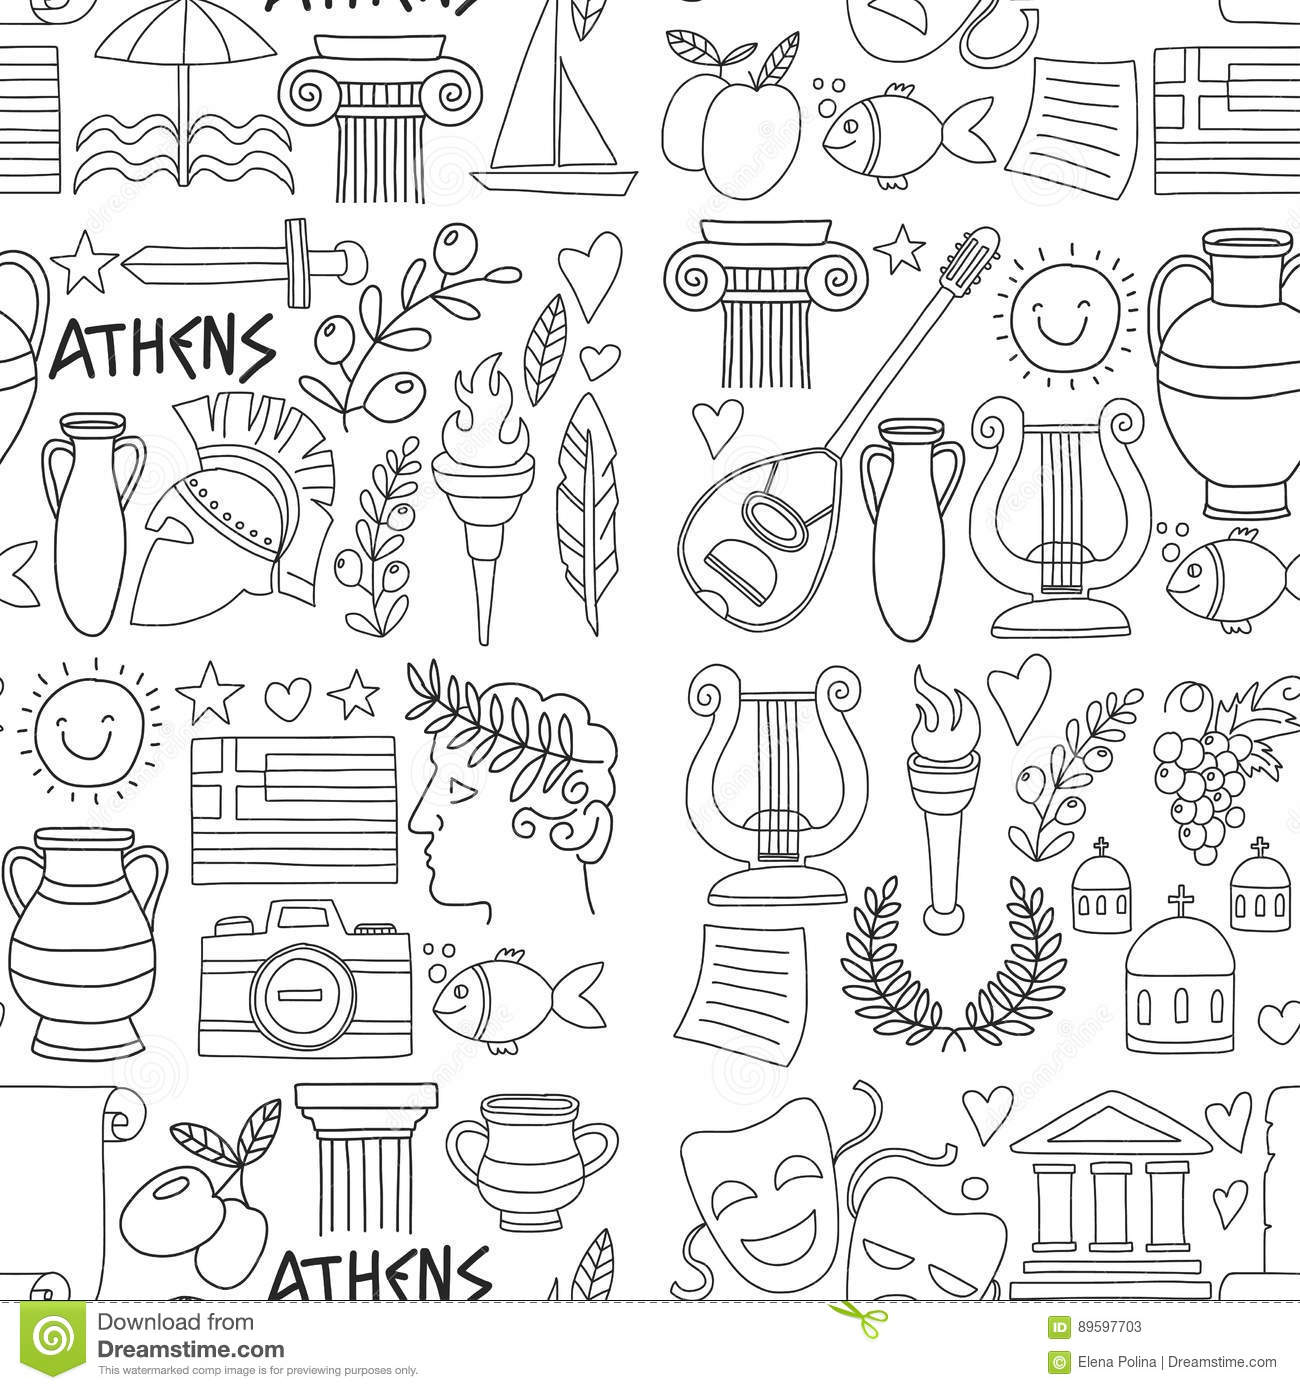 Ancient Greece Vector Elements In Doodle Style For